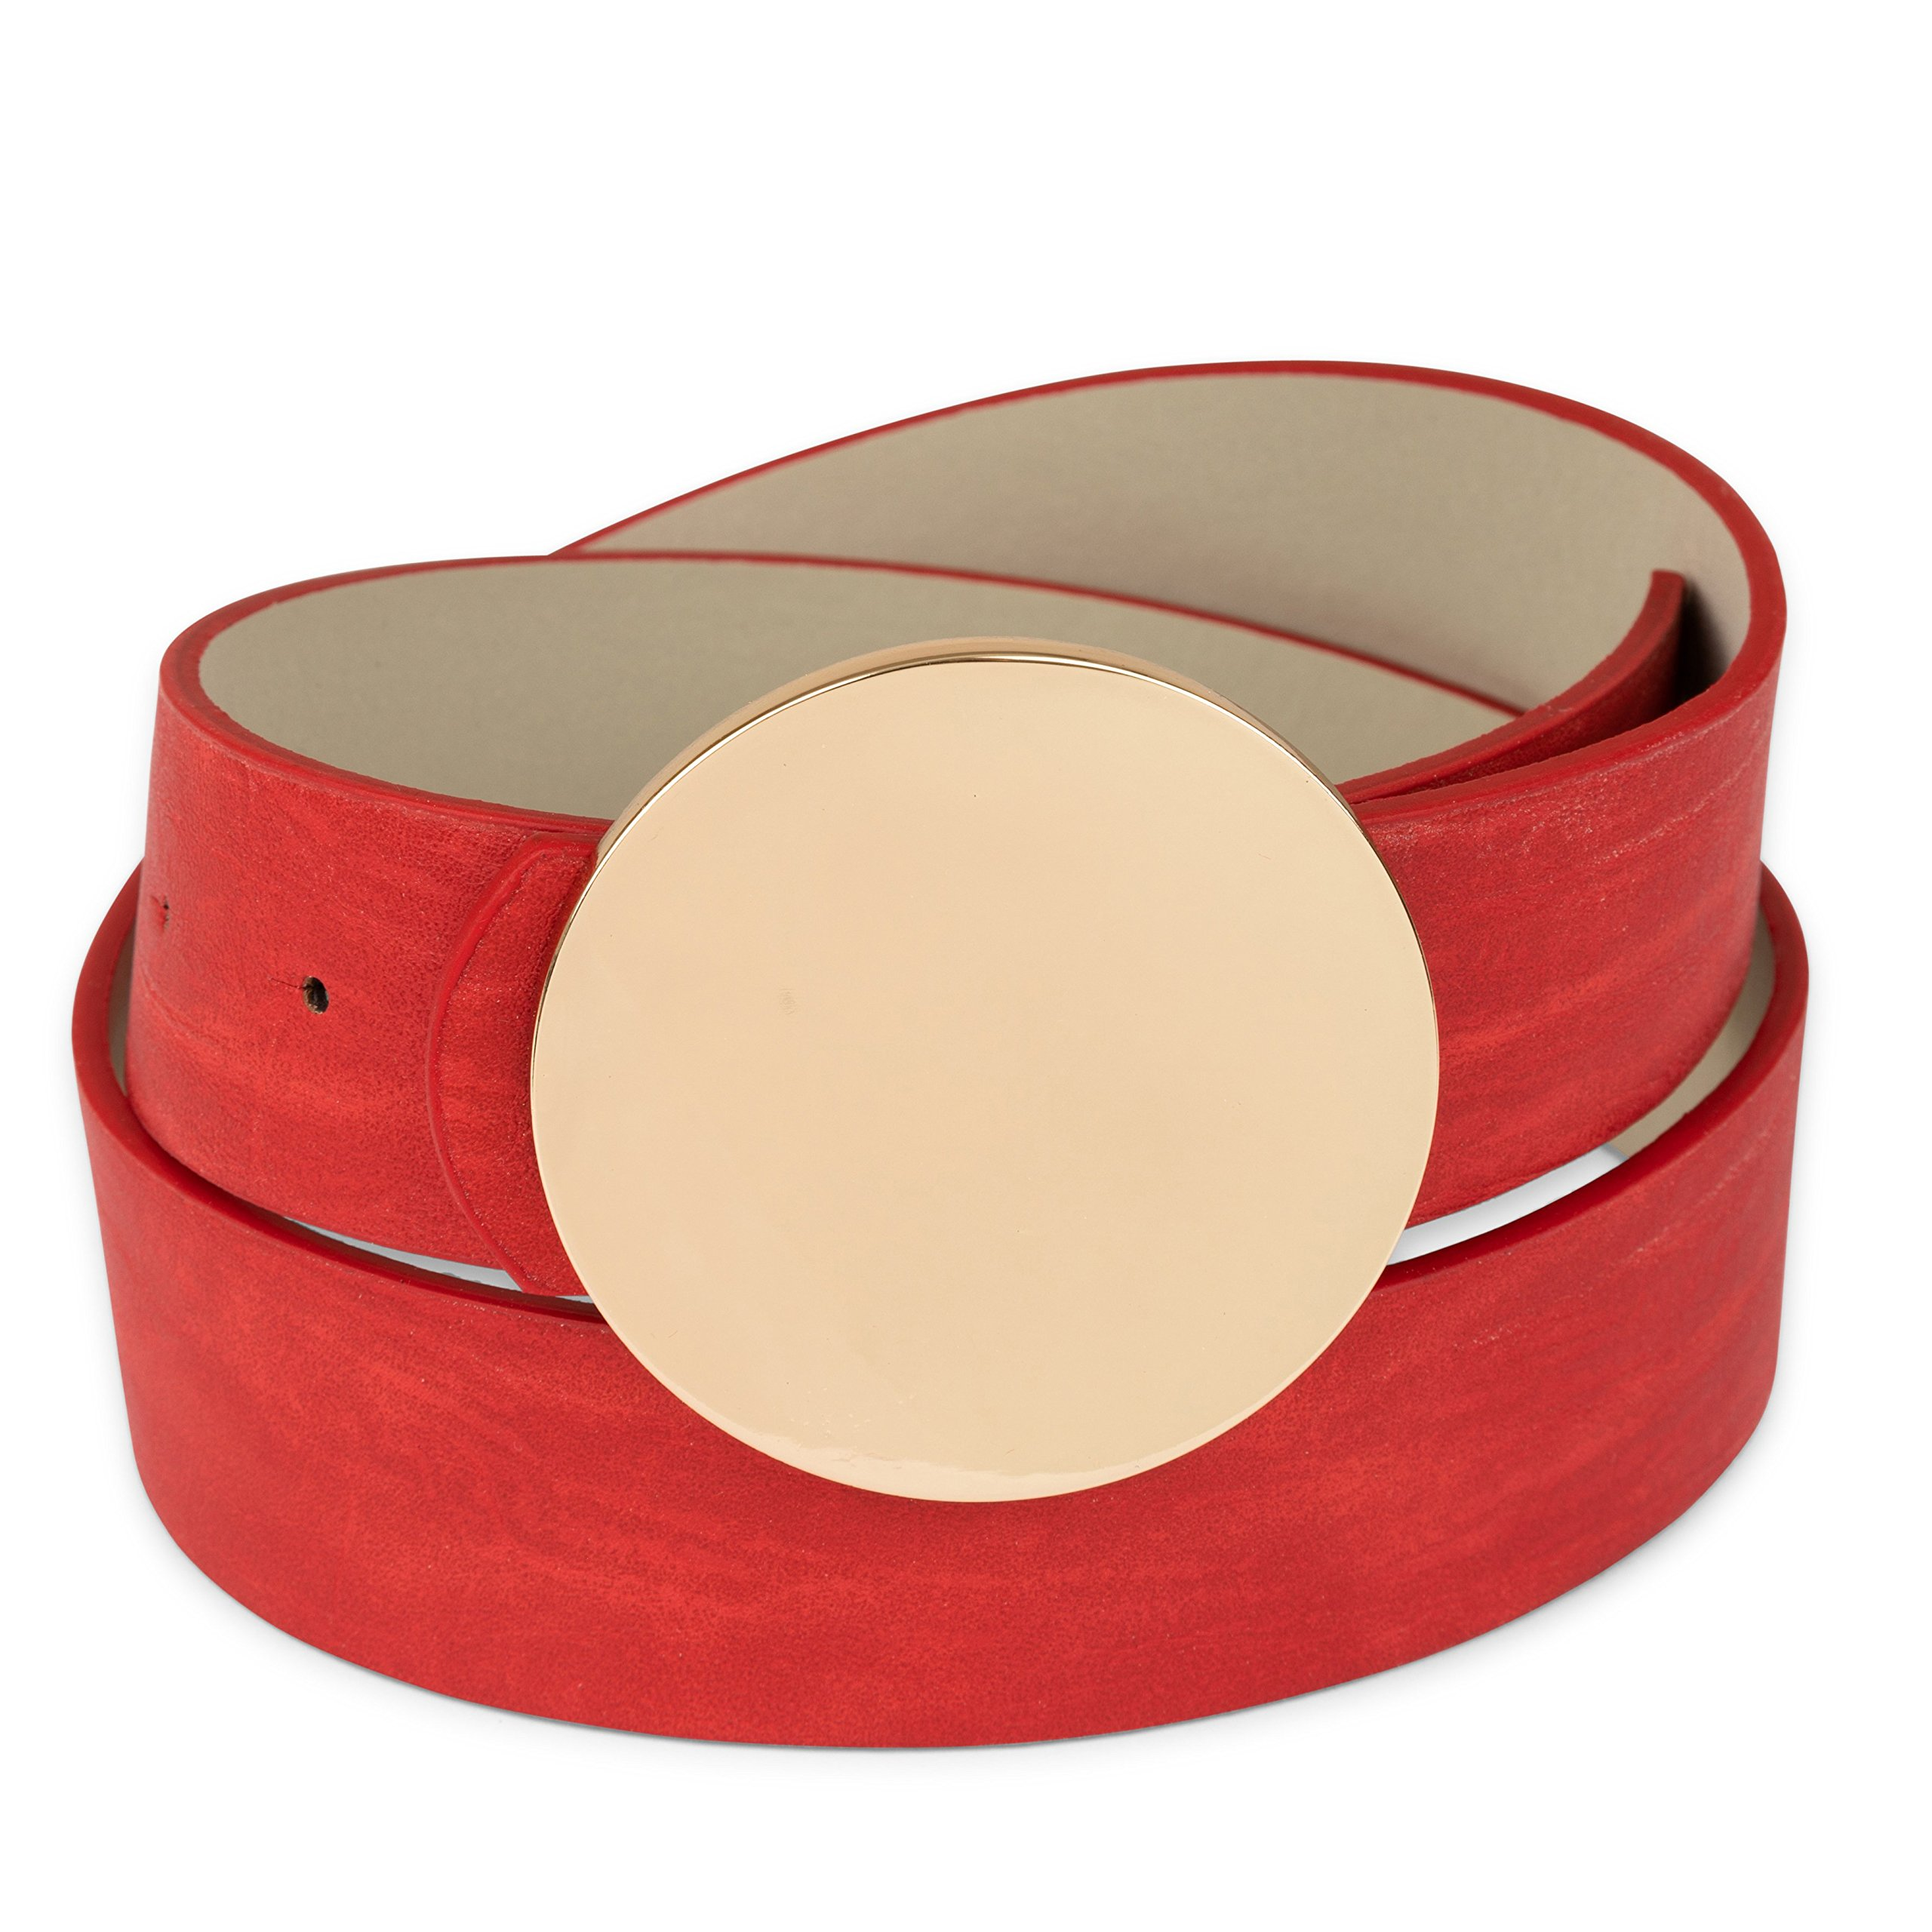 Two 12 Fashion Women's Gold Round Buckle Vegan Leather Belt, Red